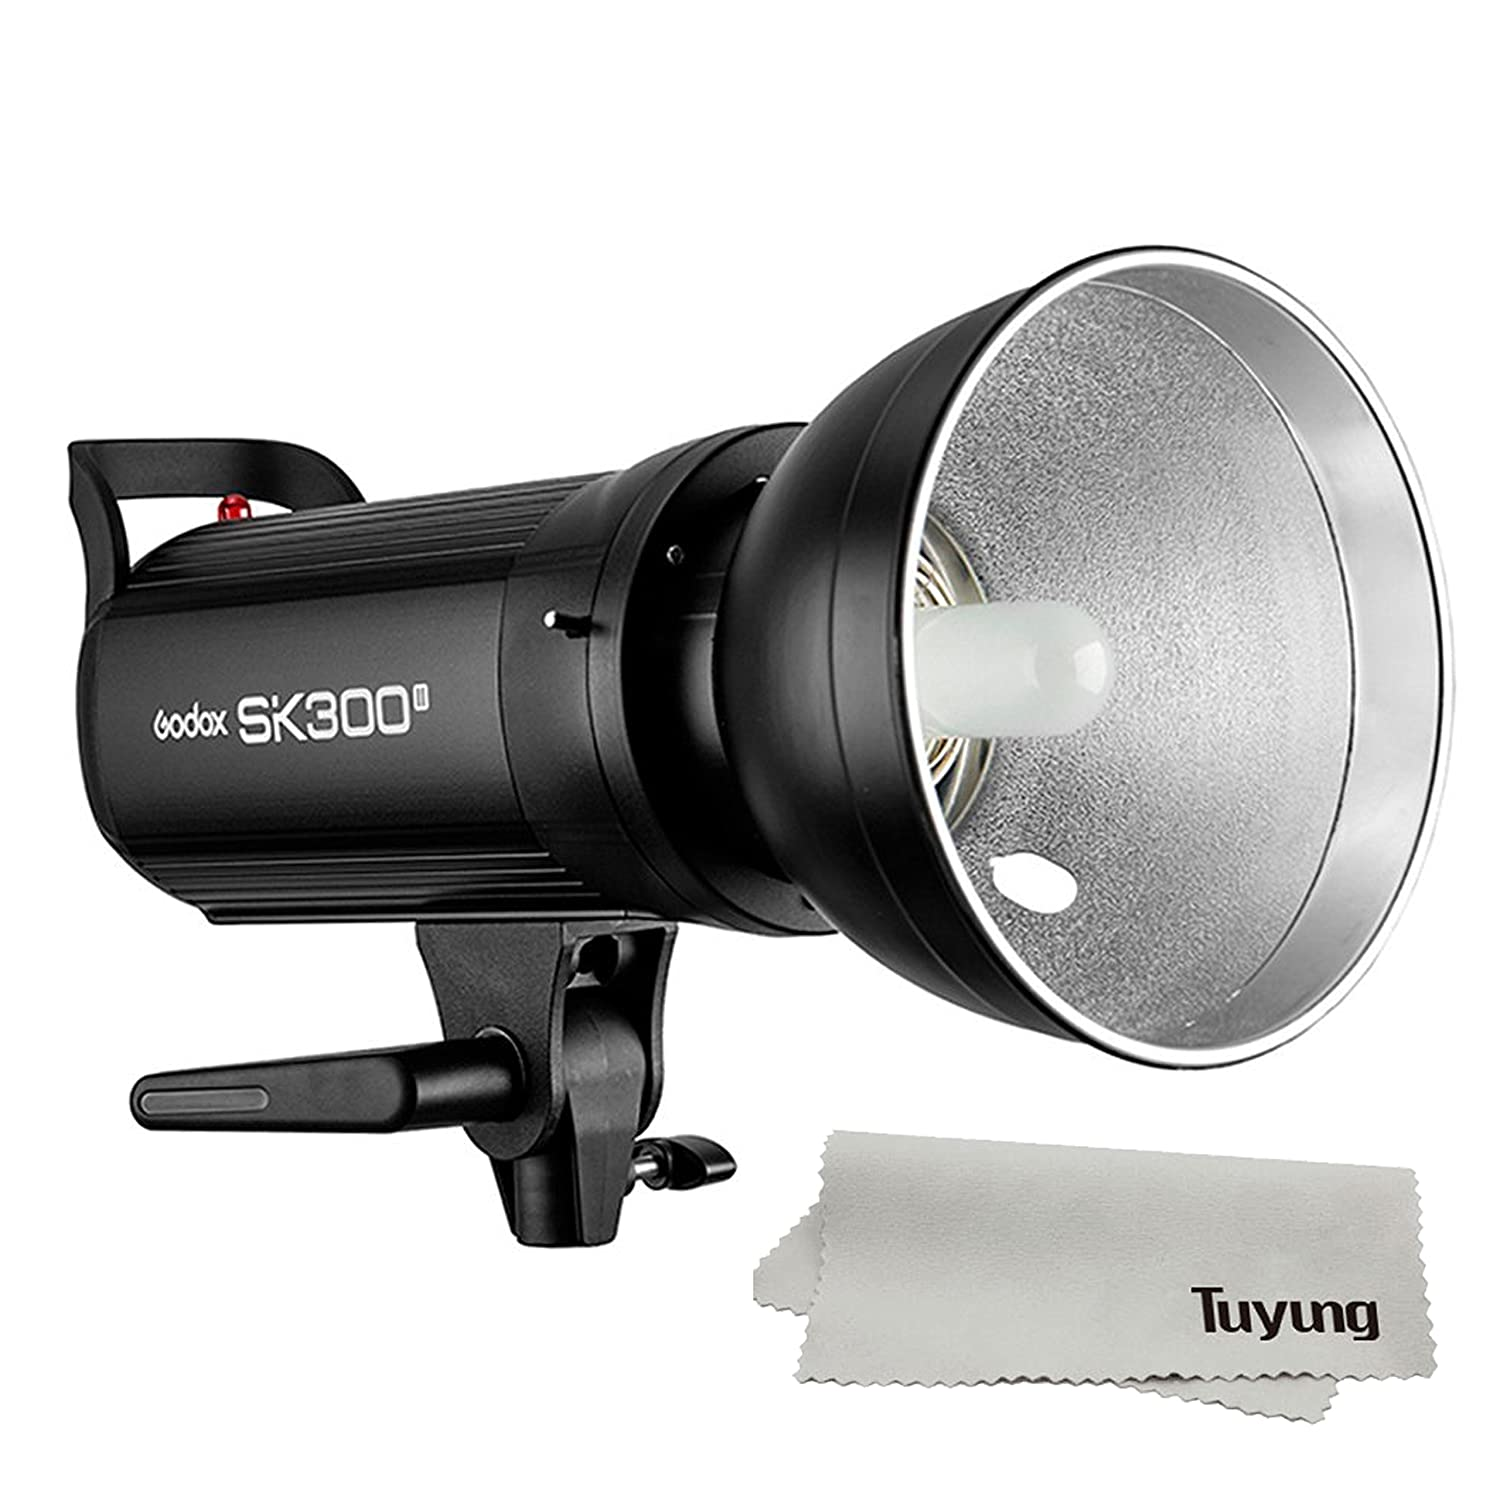 Godox SK300II 300 Monolight with Built-in Godox 2.4G Wireless X System Bowens Mount Strobe Flash for Photography Lighting Portrait Photography SK300 II